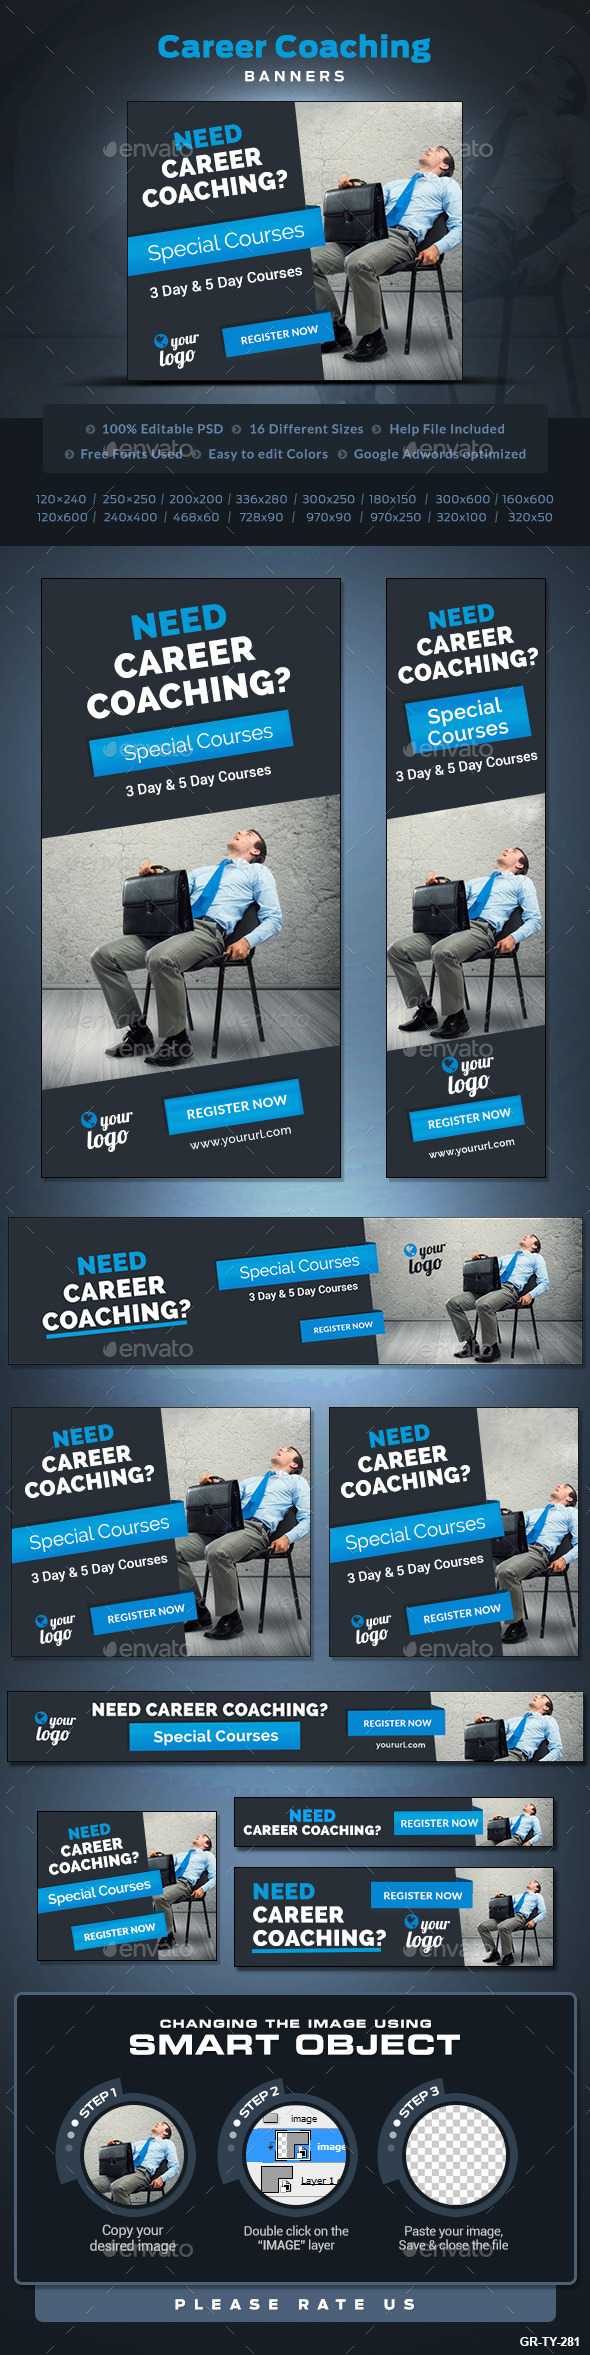 Career Coaching Banners Career Coach Adwords Banner Banner